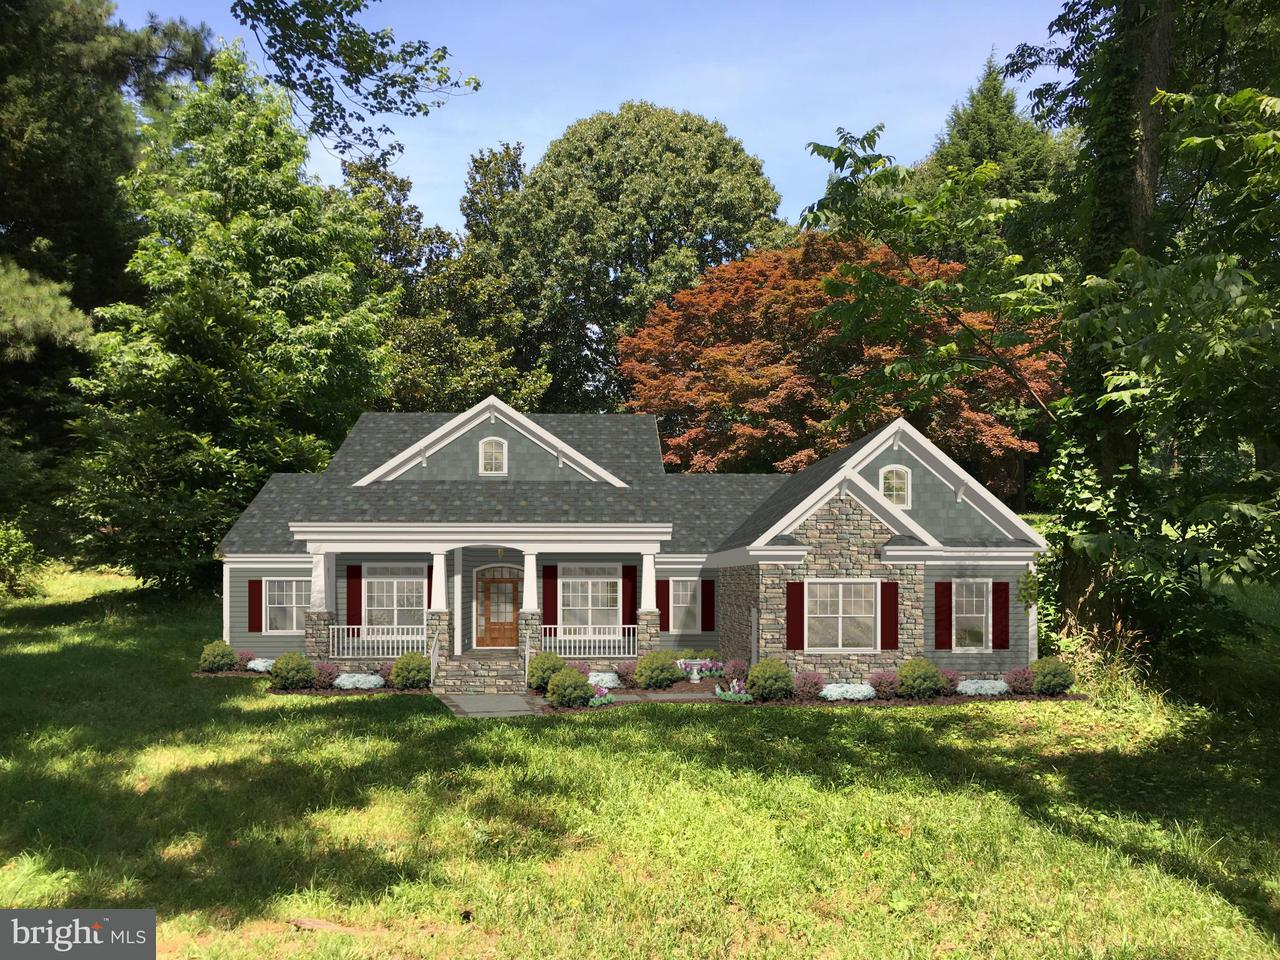 Single Family Home for Sale at 599 Broadwater Way 599 Broadwater Way Gibson Island, Maryland 21056 United States